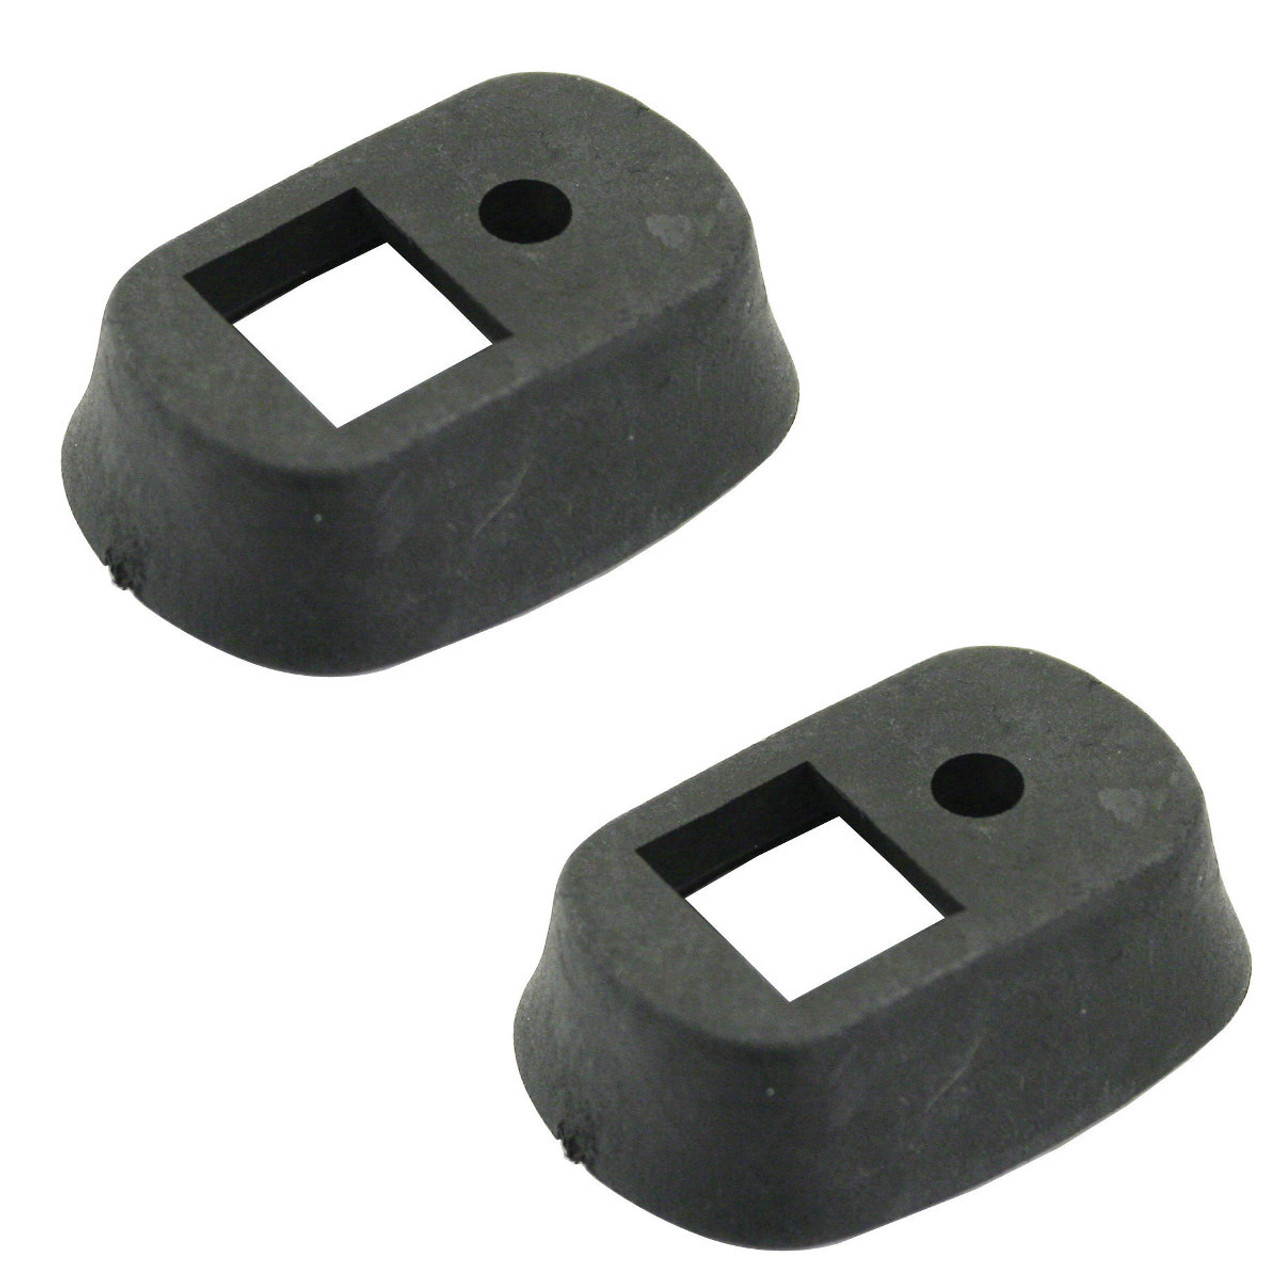 Door Switch Seals, Pair, Fits Air Cooled VW Type-1-2-3 58-79) Ghia Bug Bus, EMPI 98-2035